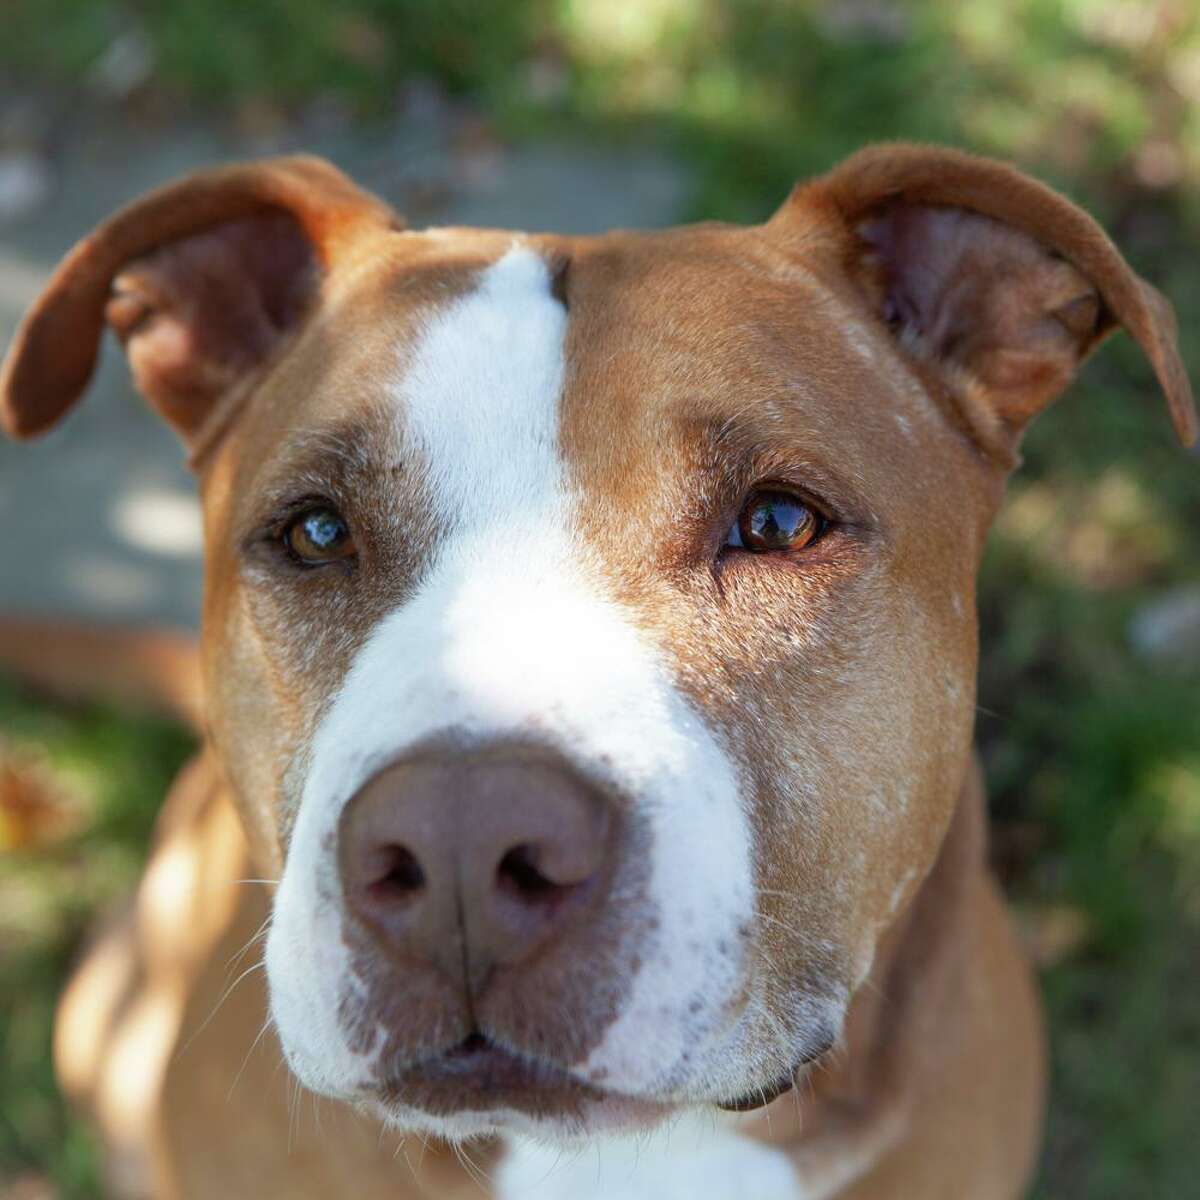 Bruce is a sweet and loyal 5-year old American Staffordshire Terrier mix looking for a forever home.